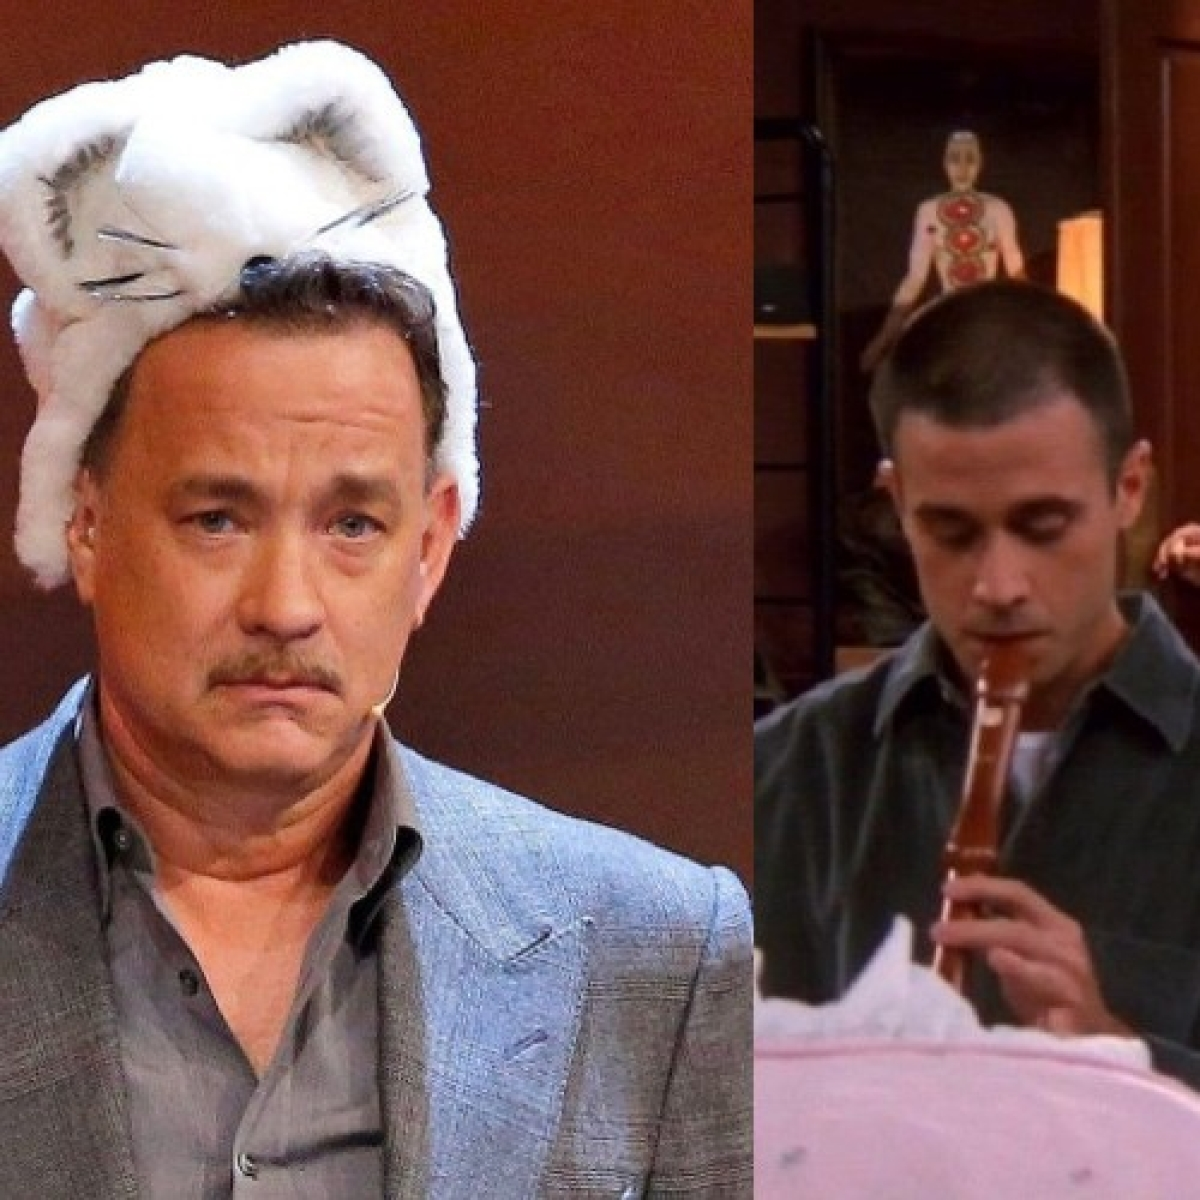 Friends: Tom Hanks was supposed to play Sandy the male nanny